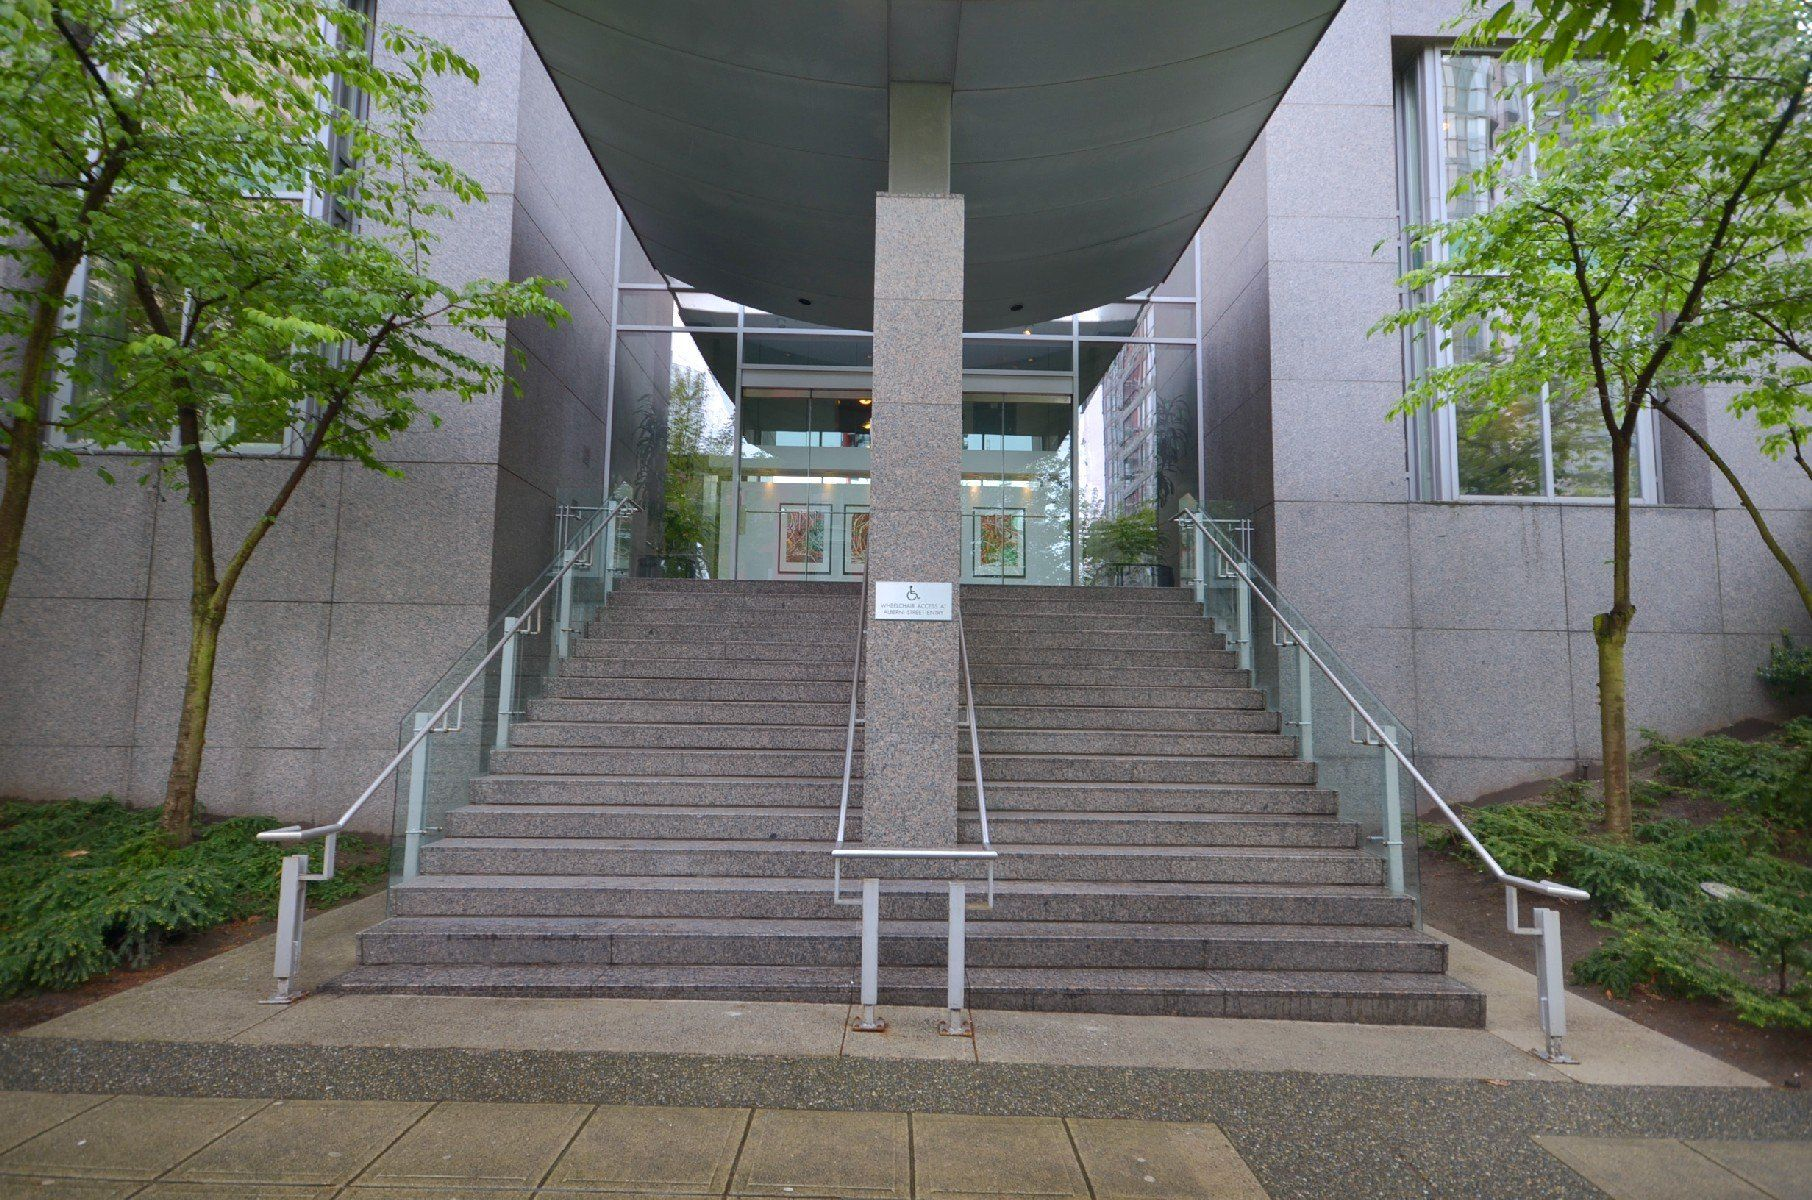 Photo 4: Photos: 1007-1200 W. Georgia St in Vancouver: Coal Harbour Condo for rent (Downtown Vancouver)